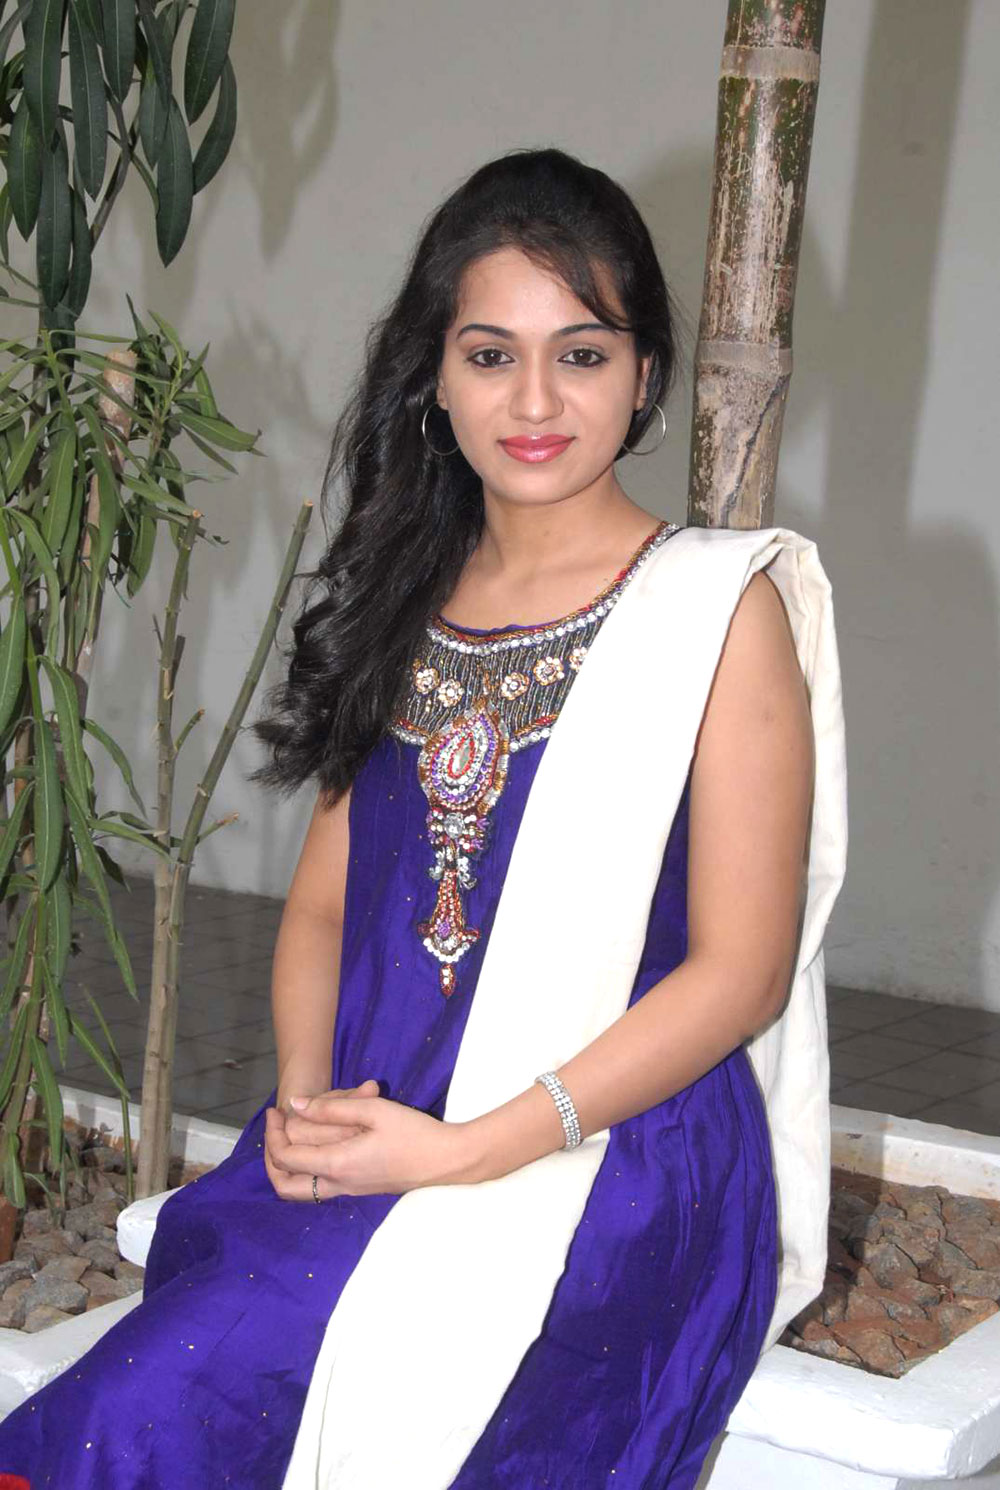 Gorgeous sexy reshma in ethnic salwar suit latest beautiful photos